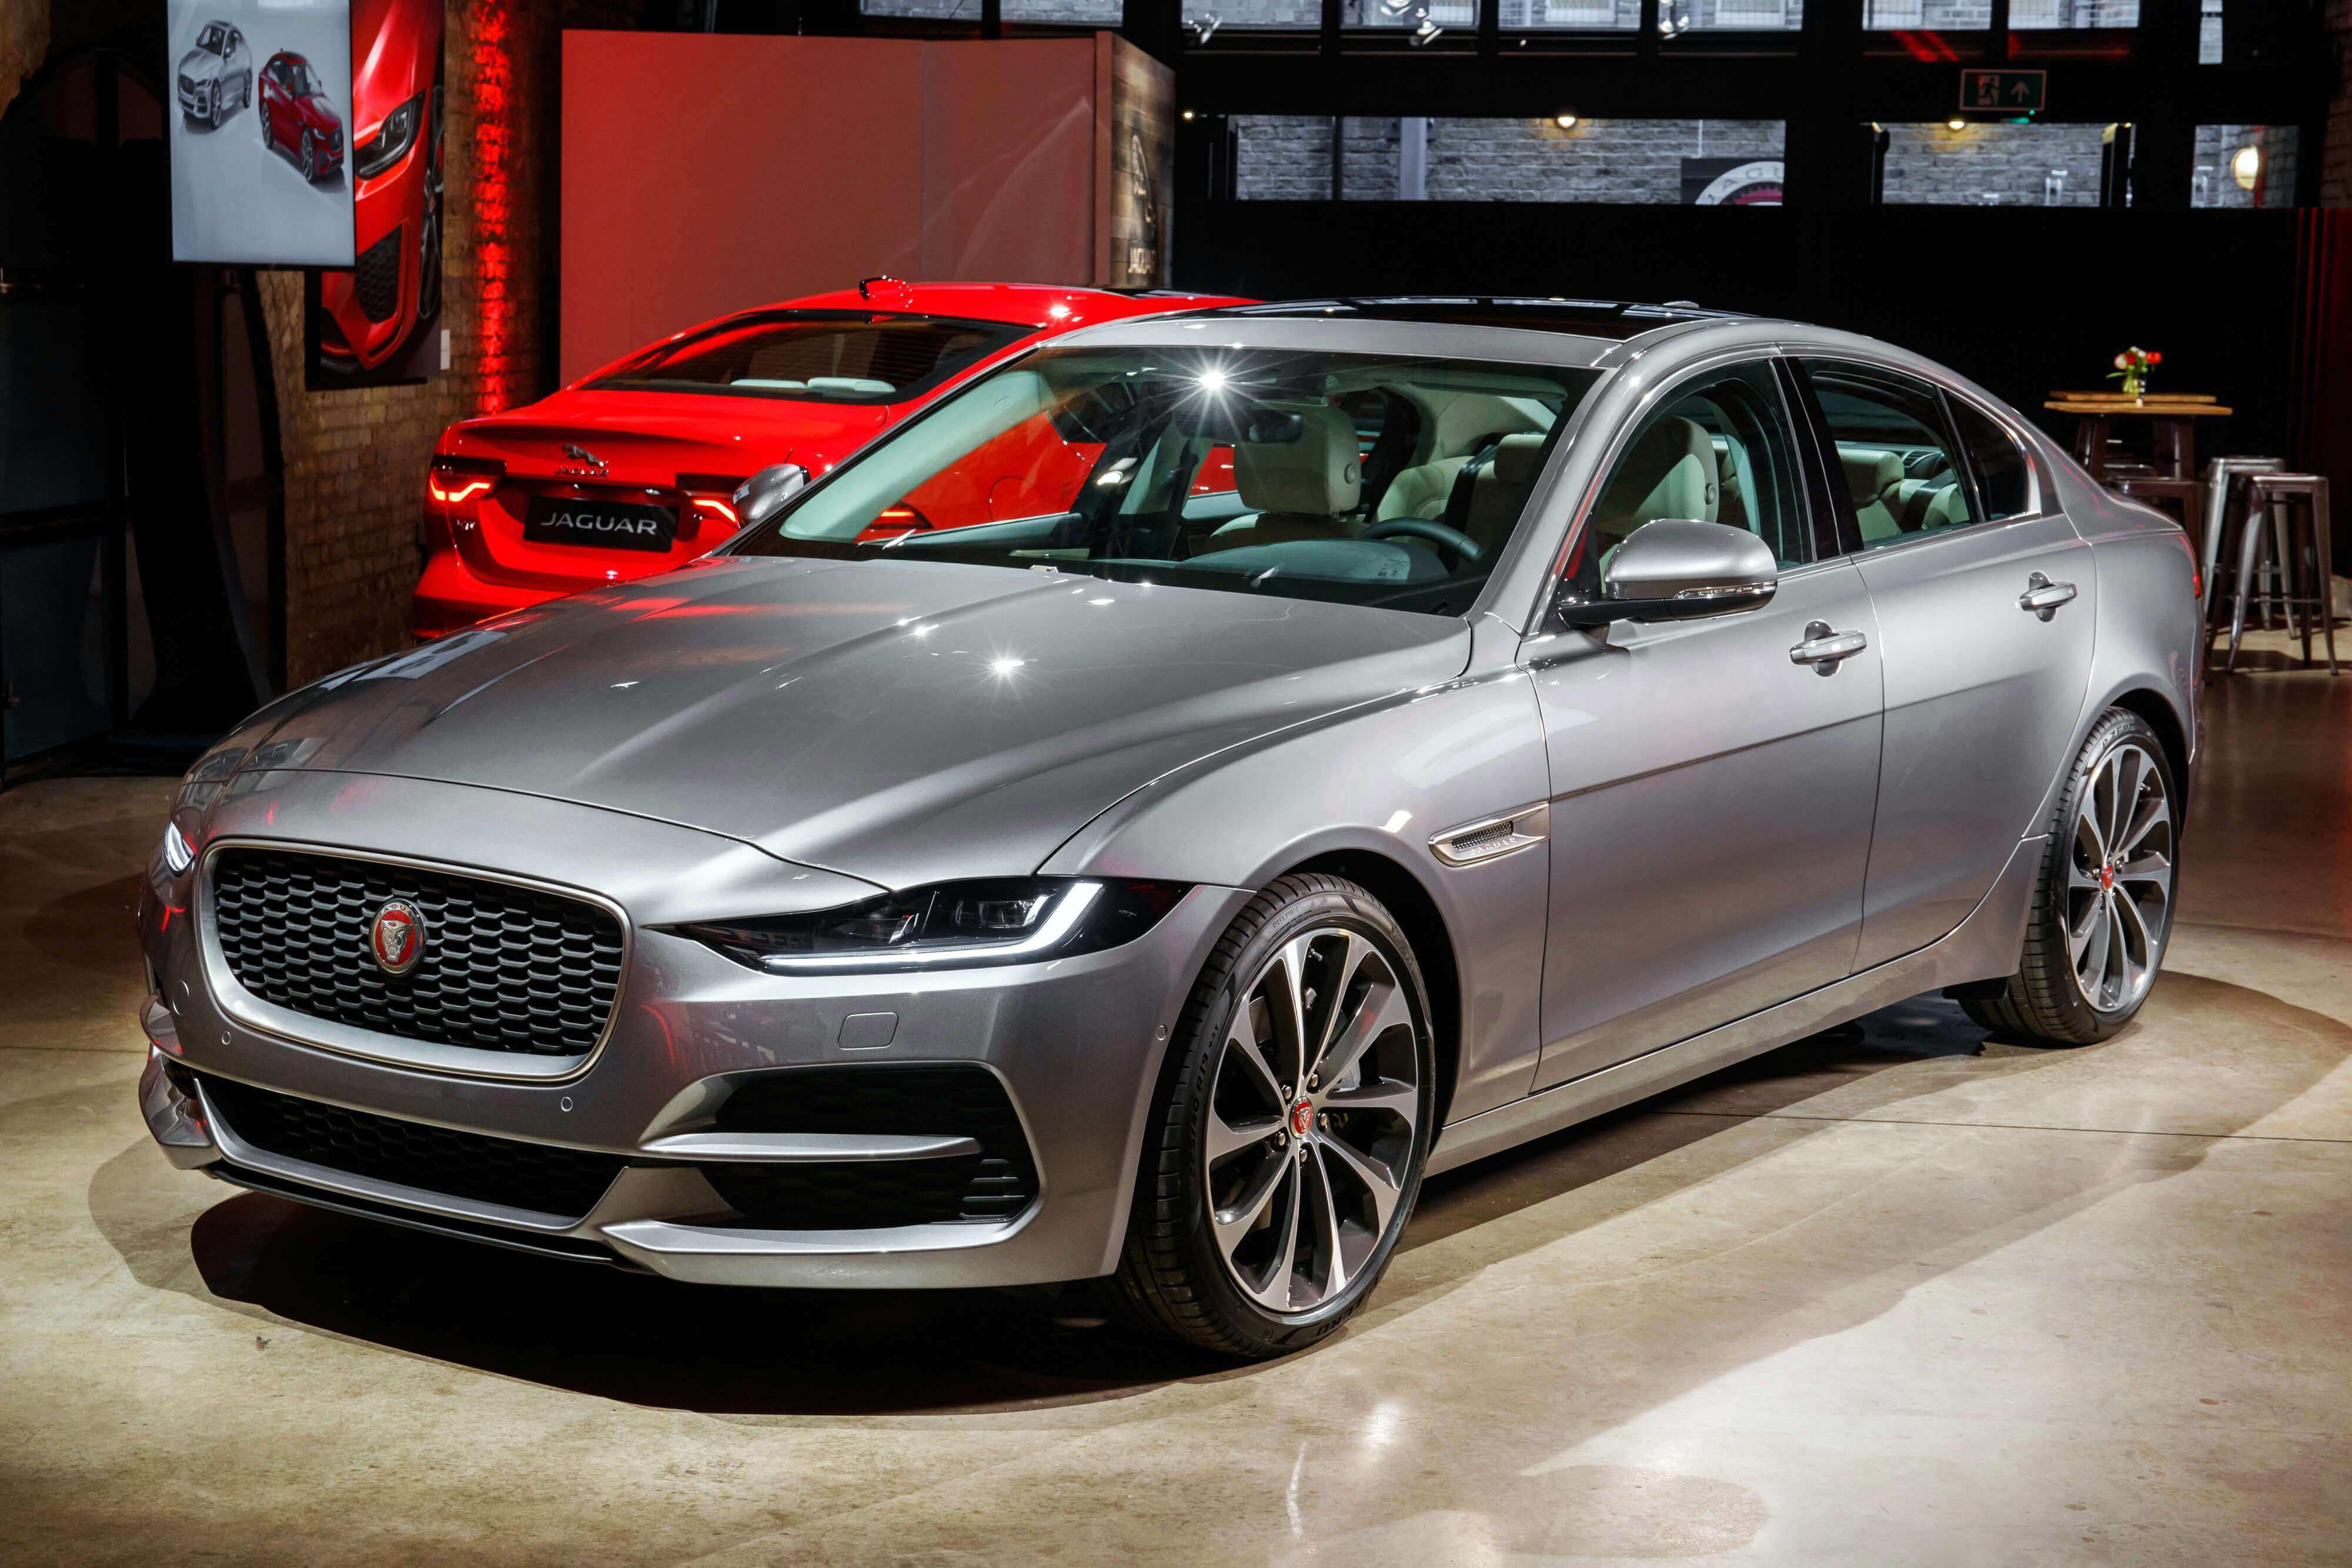 93 Best 2020 Jaguar Xe Sedan Release Date And Concept